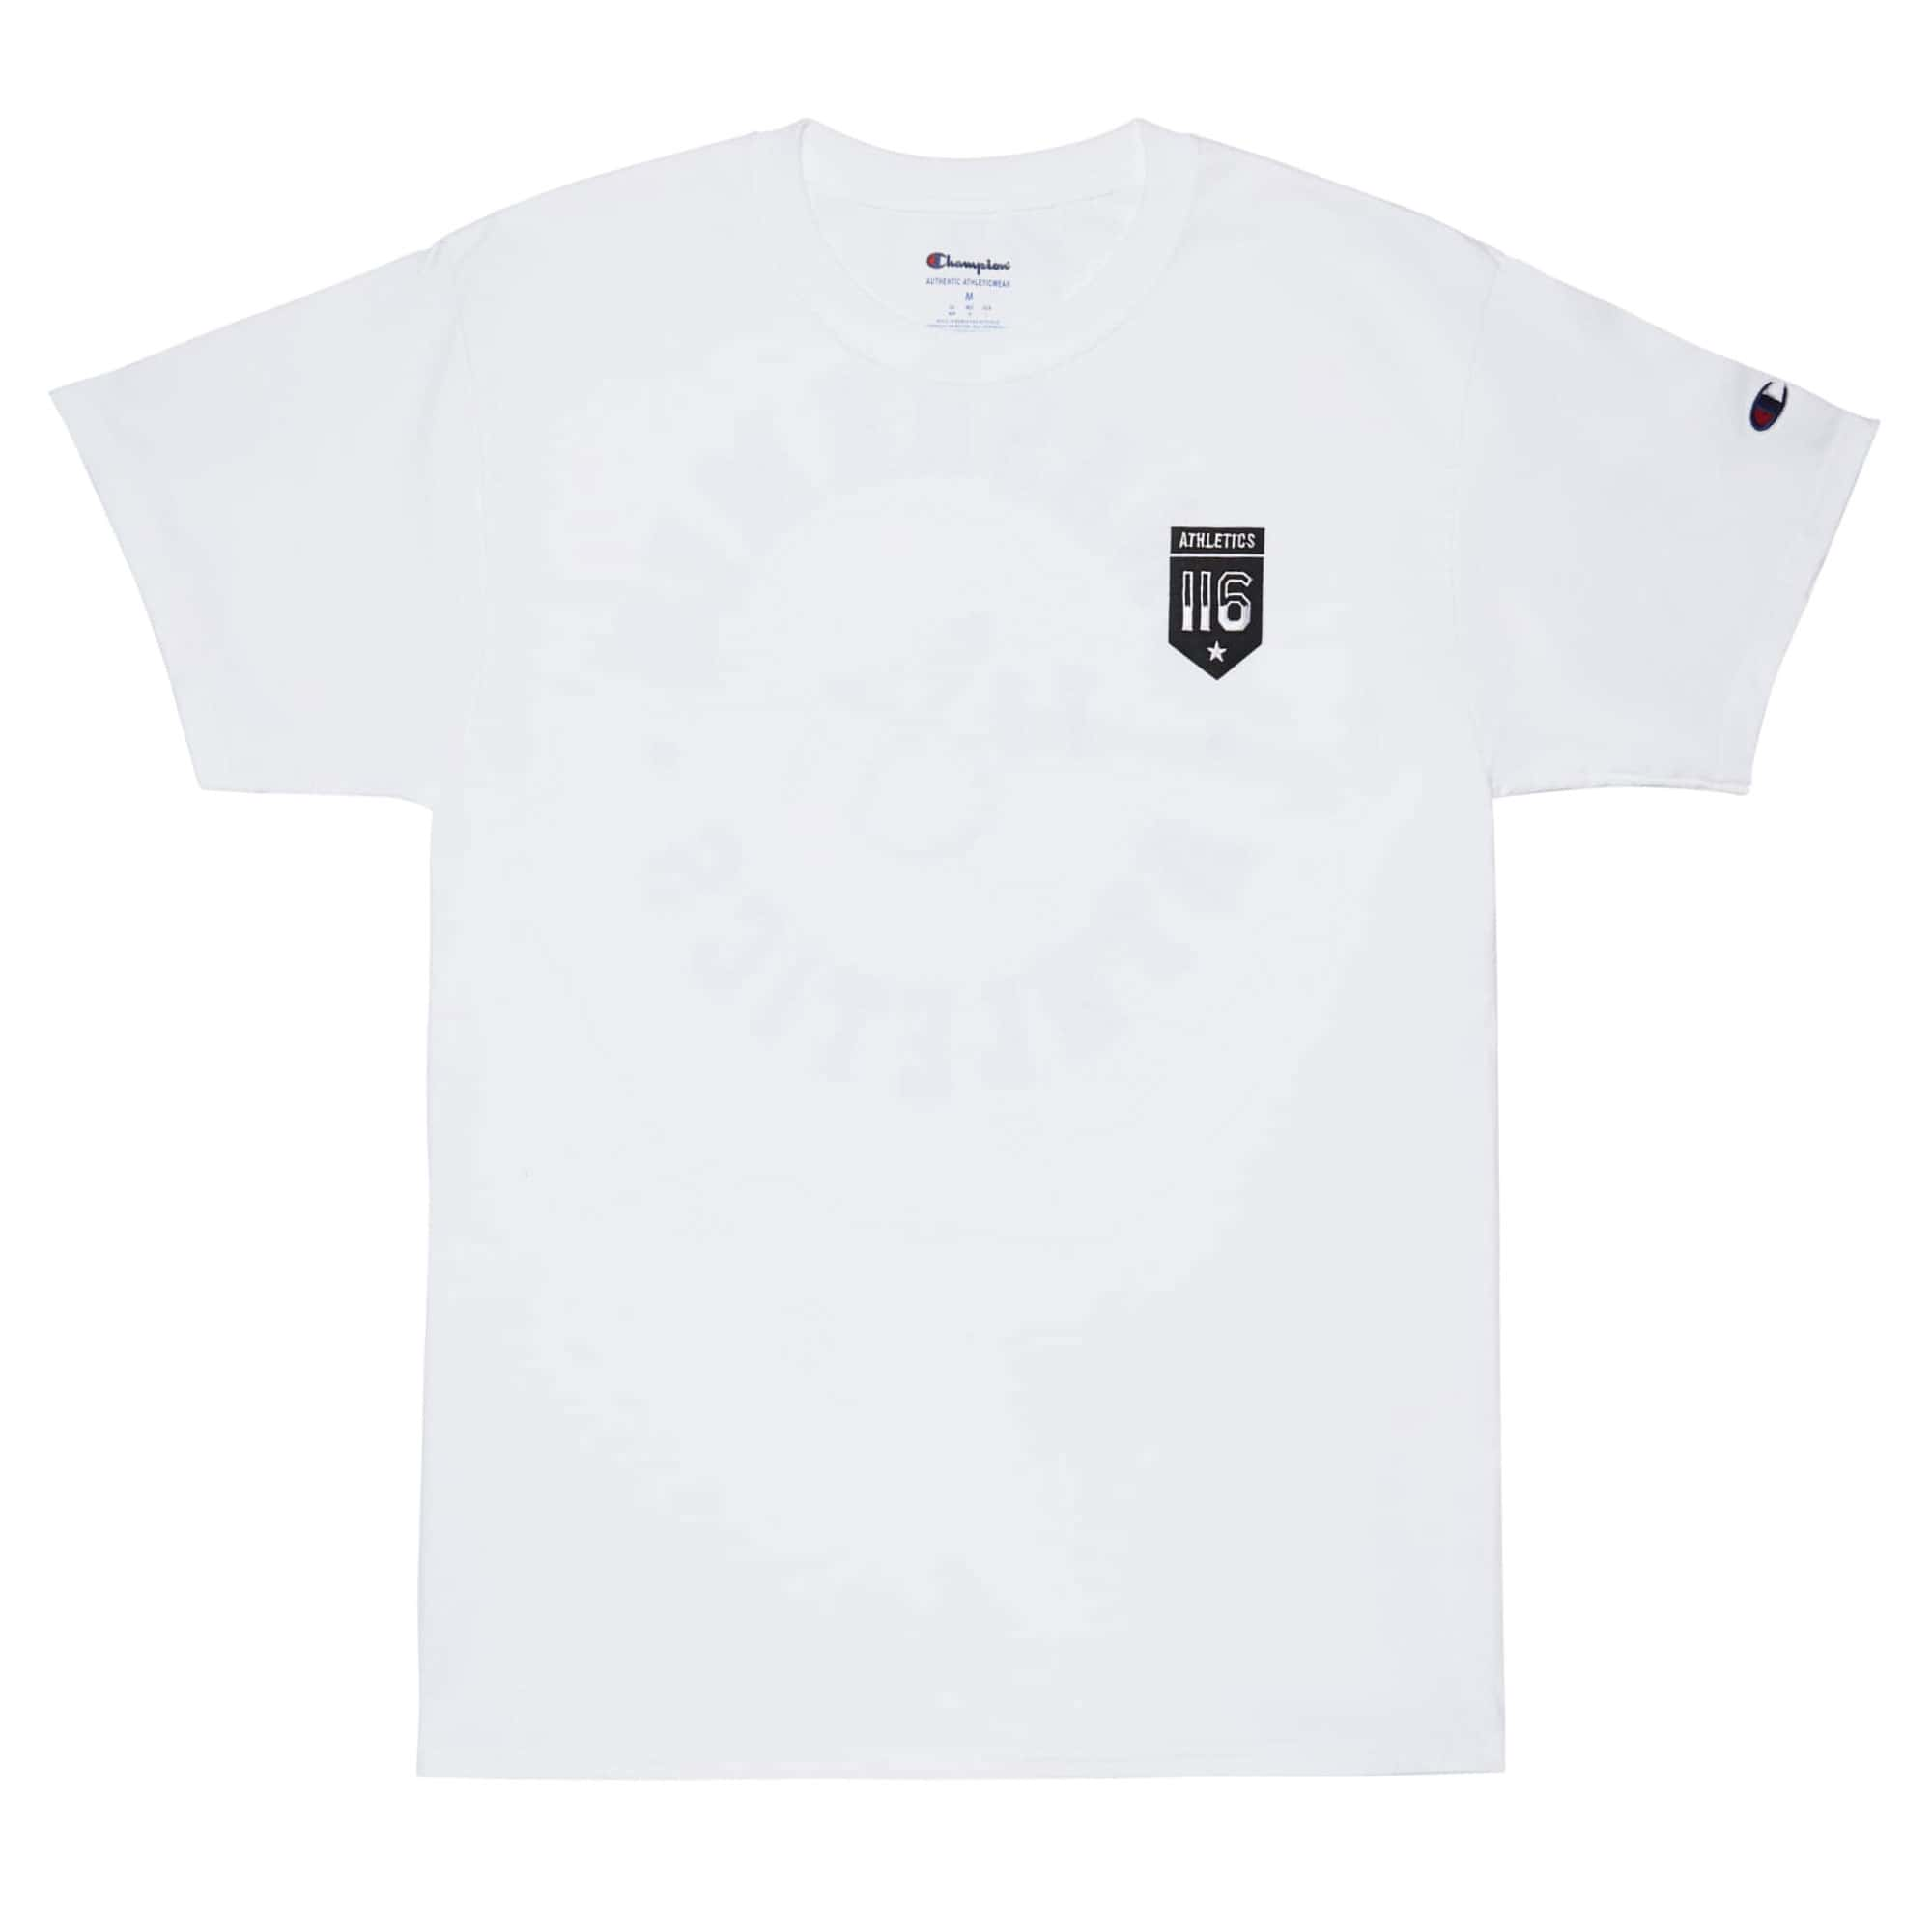 116 Athletics x Champion Tee